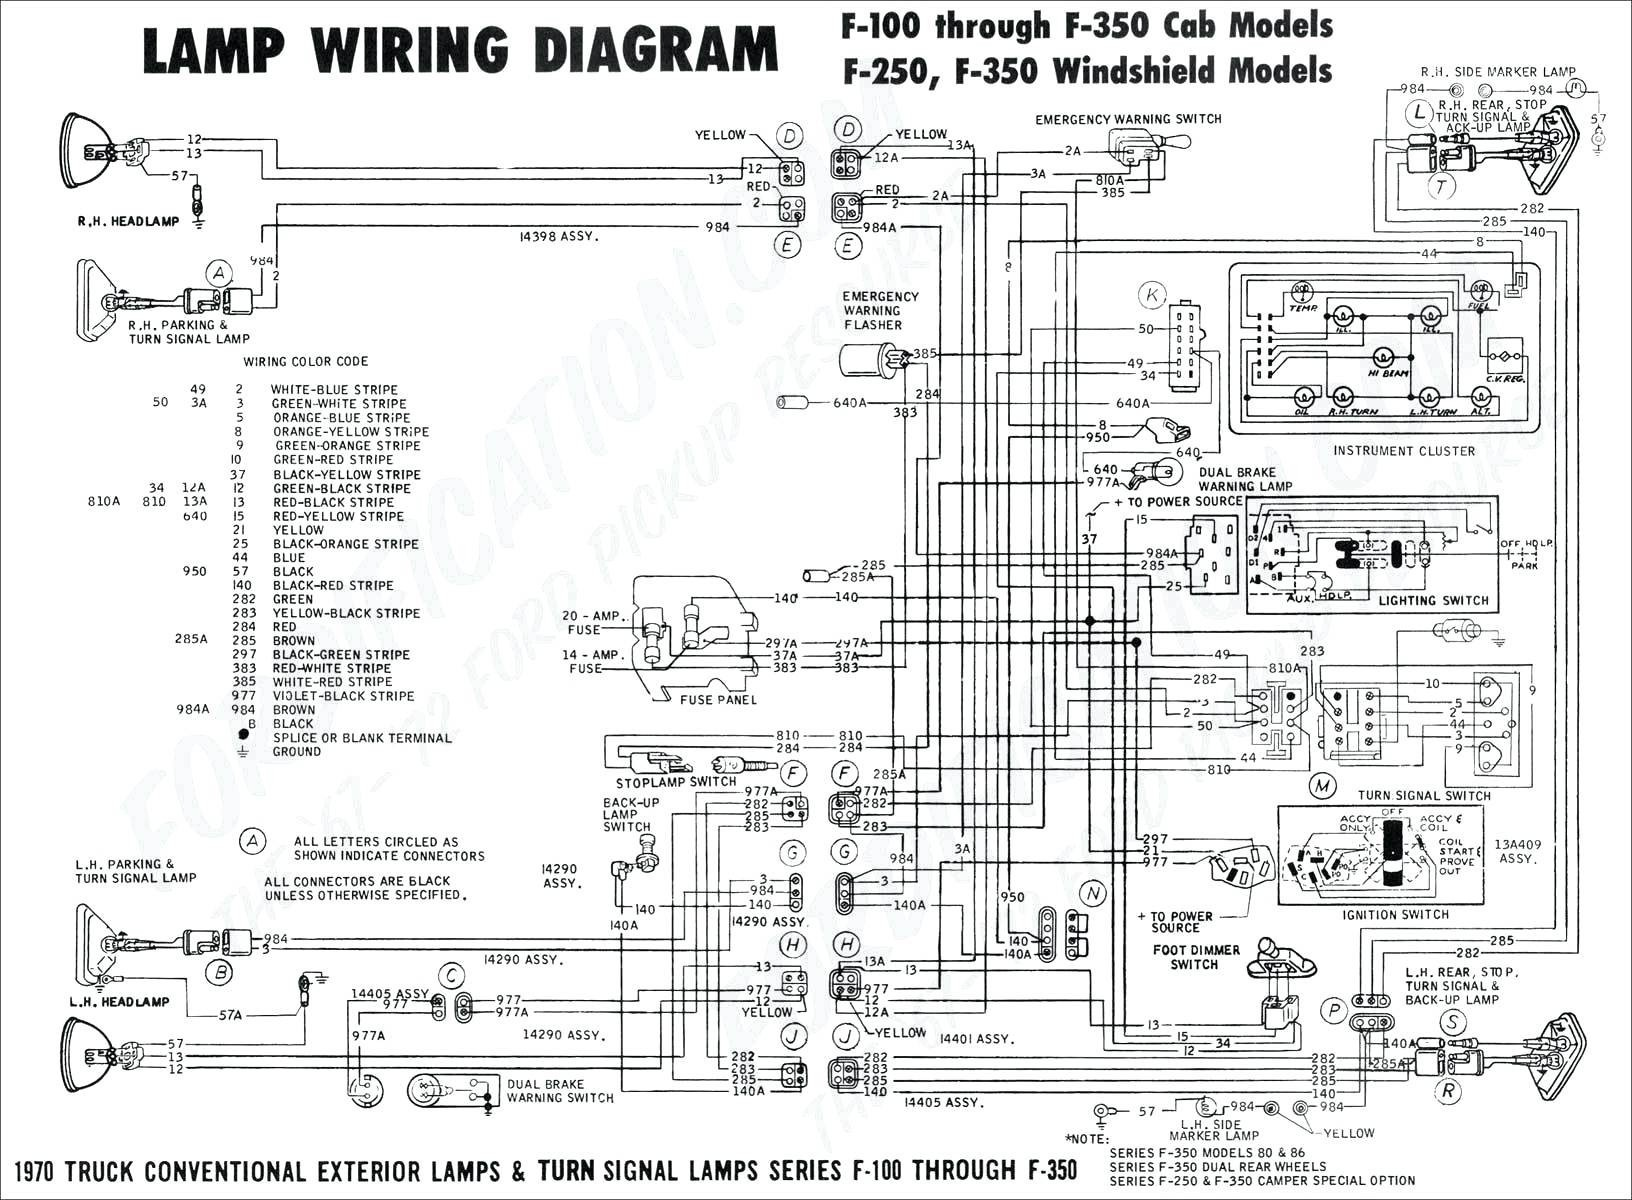 2006 ford Expedition Engine Diagram 2000 ford Ranger Horn Wiring Another Blog About Wiring Diagram • Of 2006 ford Expedition Engine Diagram Used 2002 F250 Wiring Harness Another Blog About Wiring Diagram •